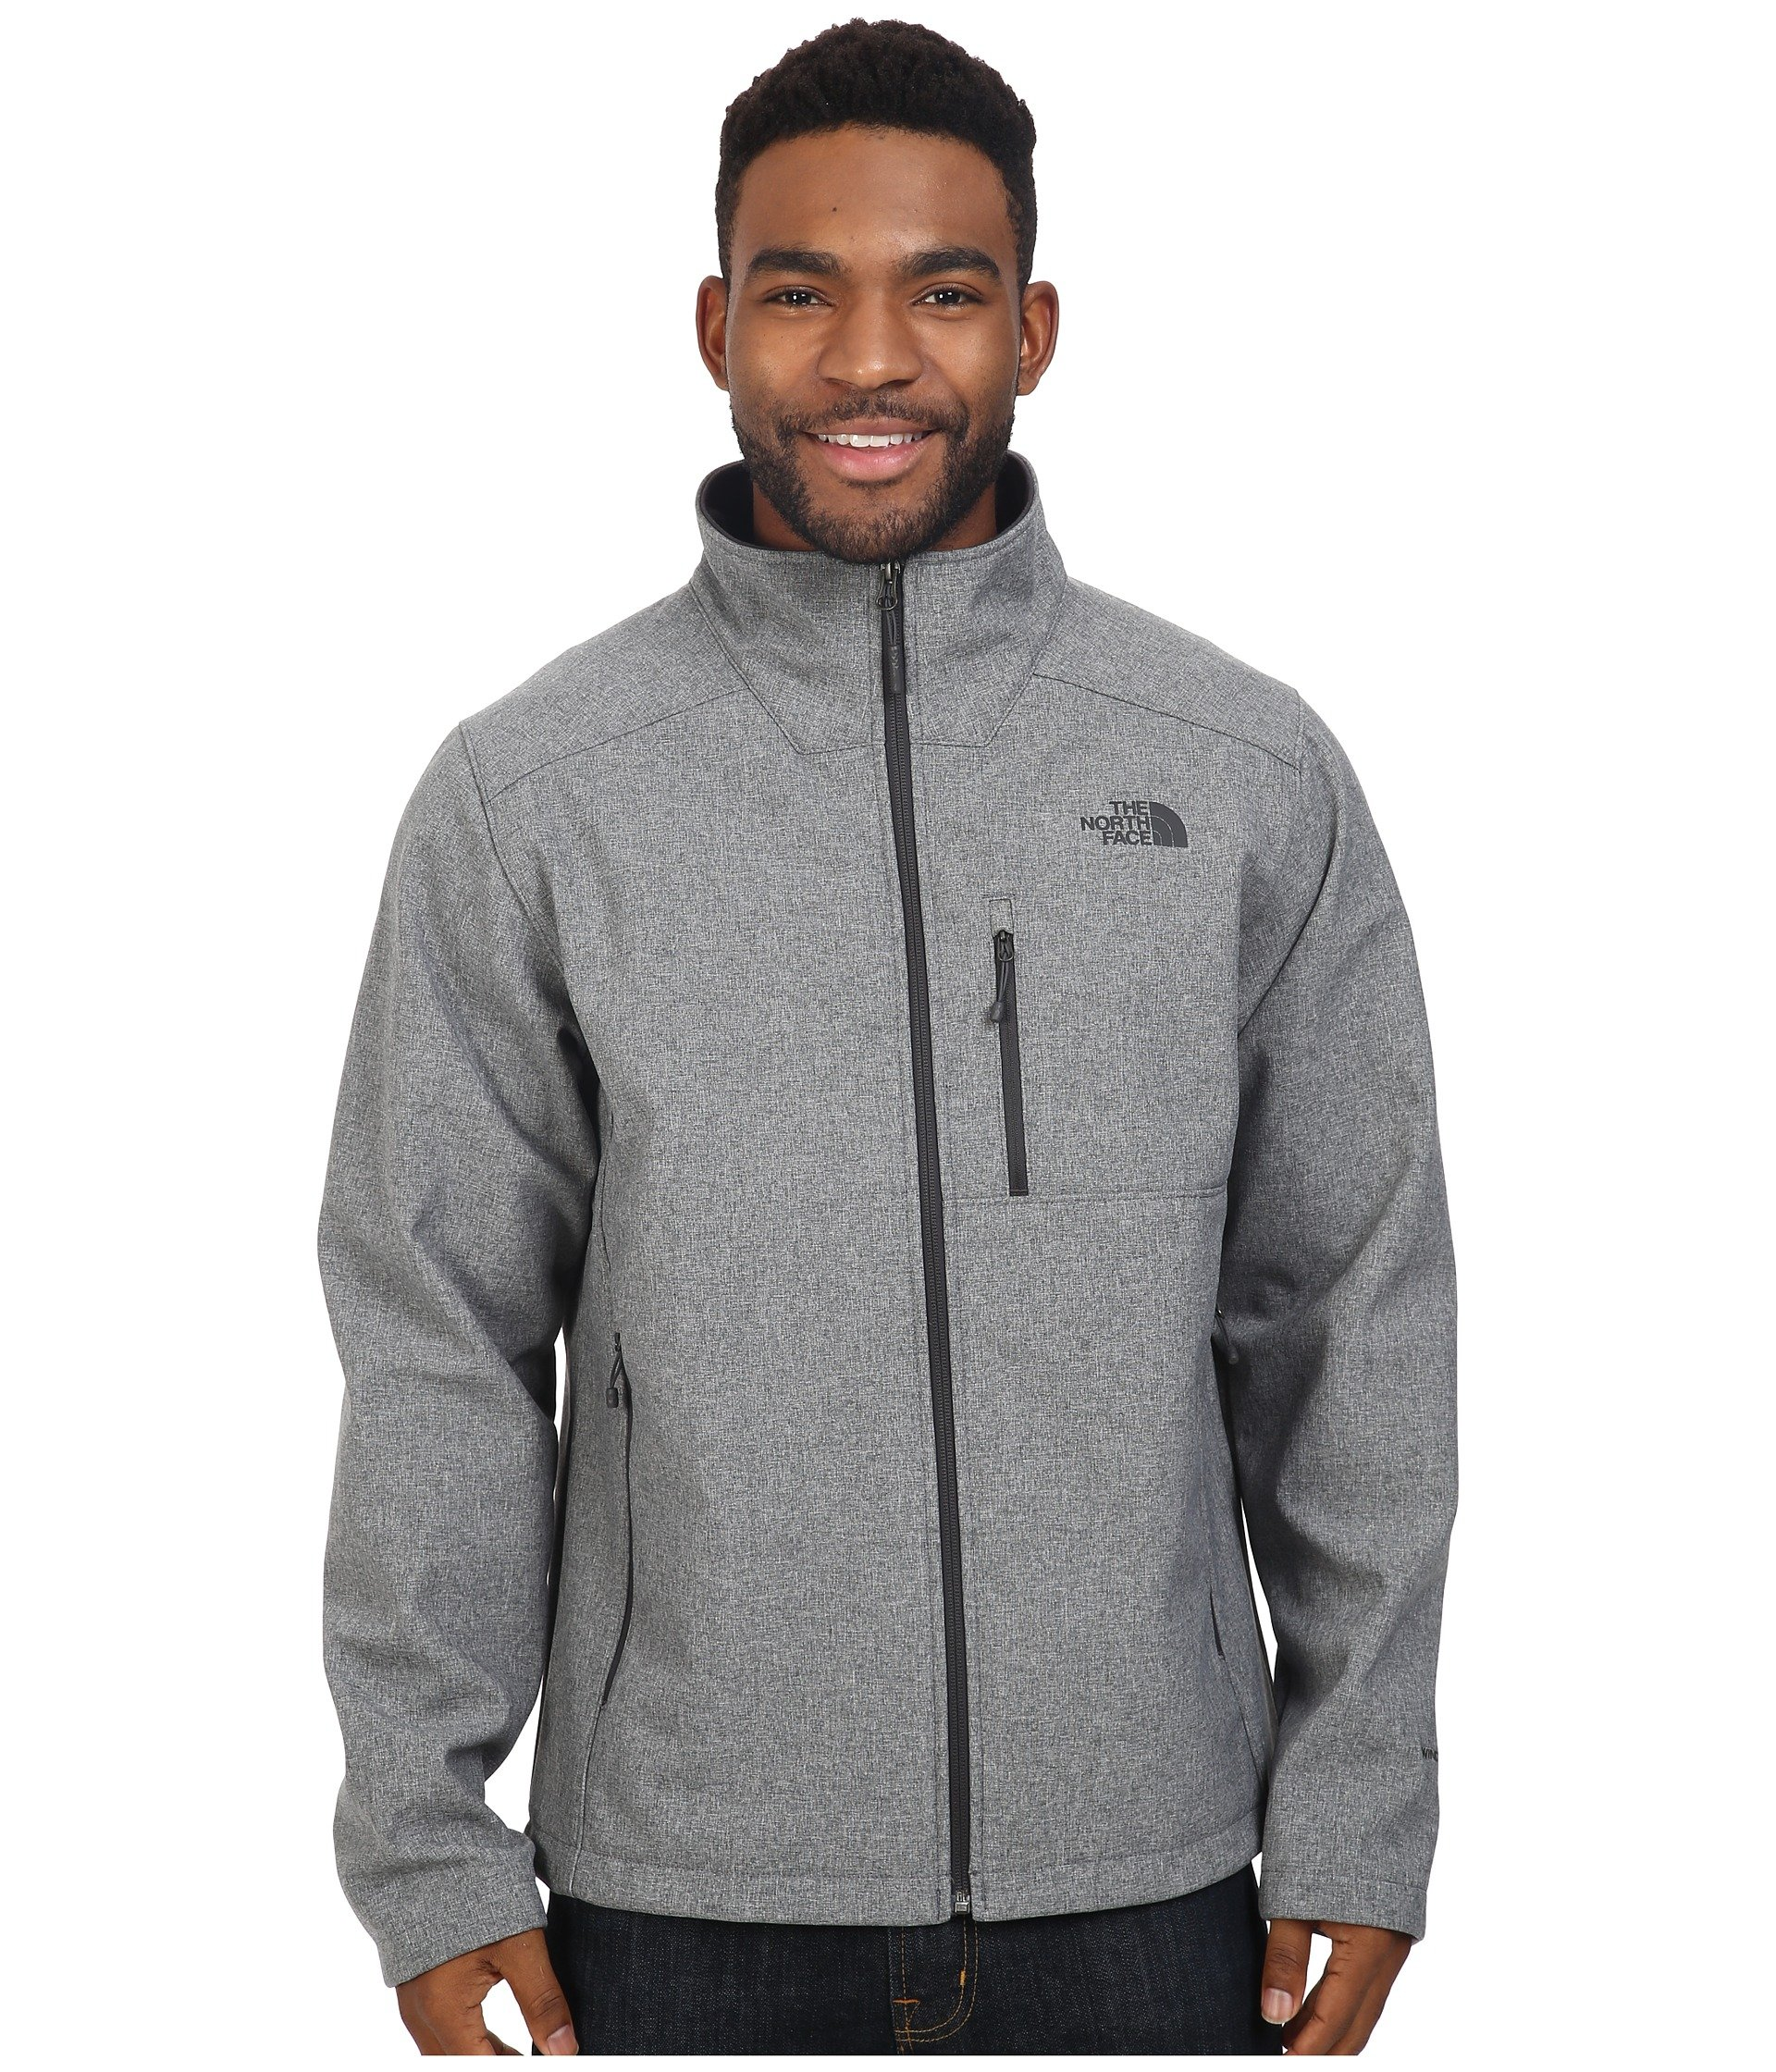 Medium Jacket Heather Tnf Heather The Apex Bionic North 2 Face tnf Grey xwqq0fX1U